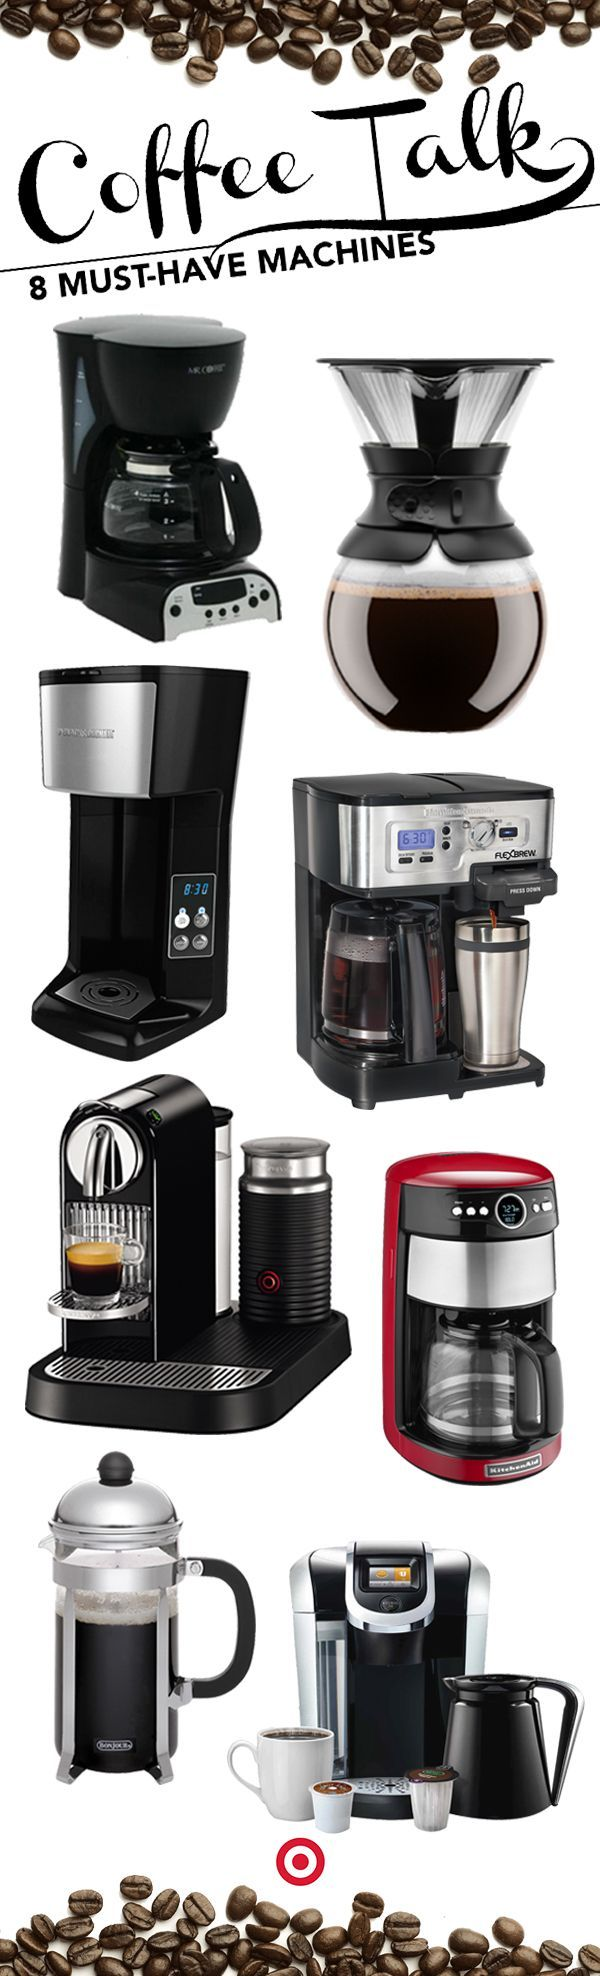 Coffee Machine Deals Shop For Coffee Machines From Our Coffee Machines Range All The